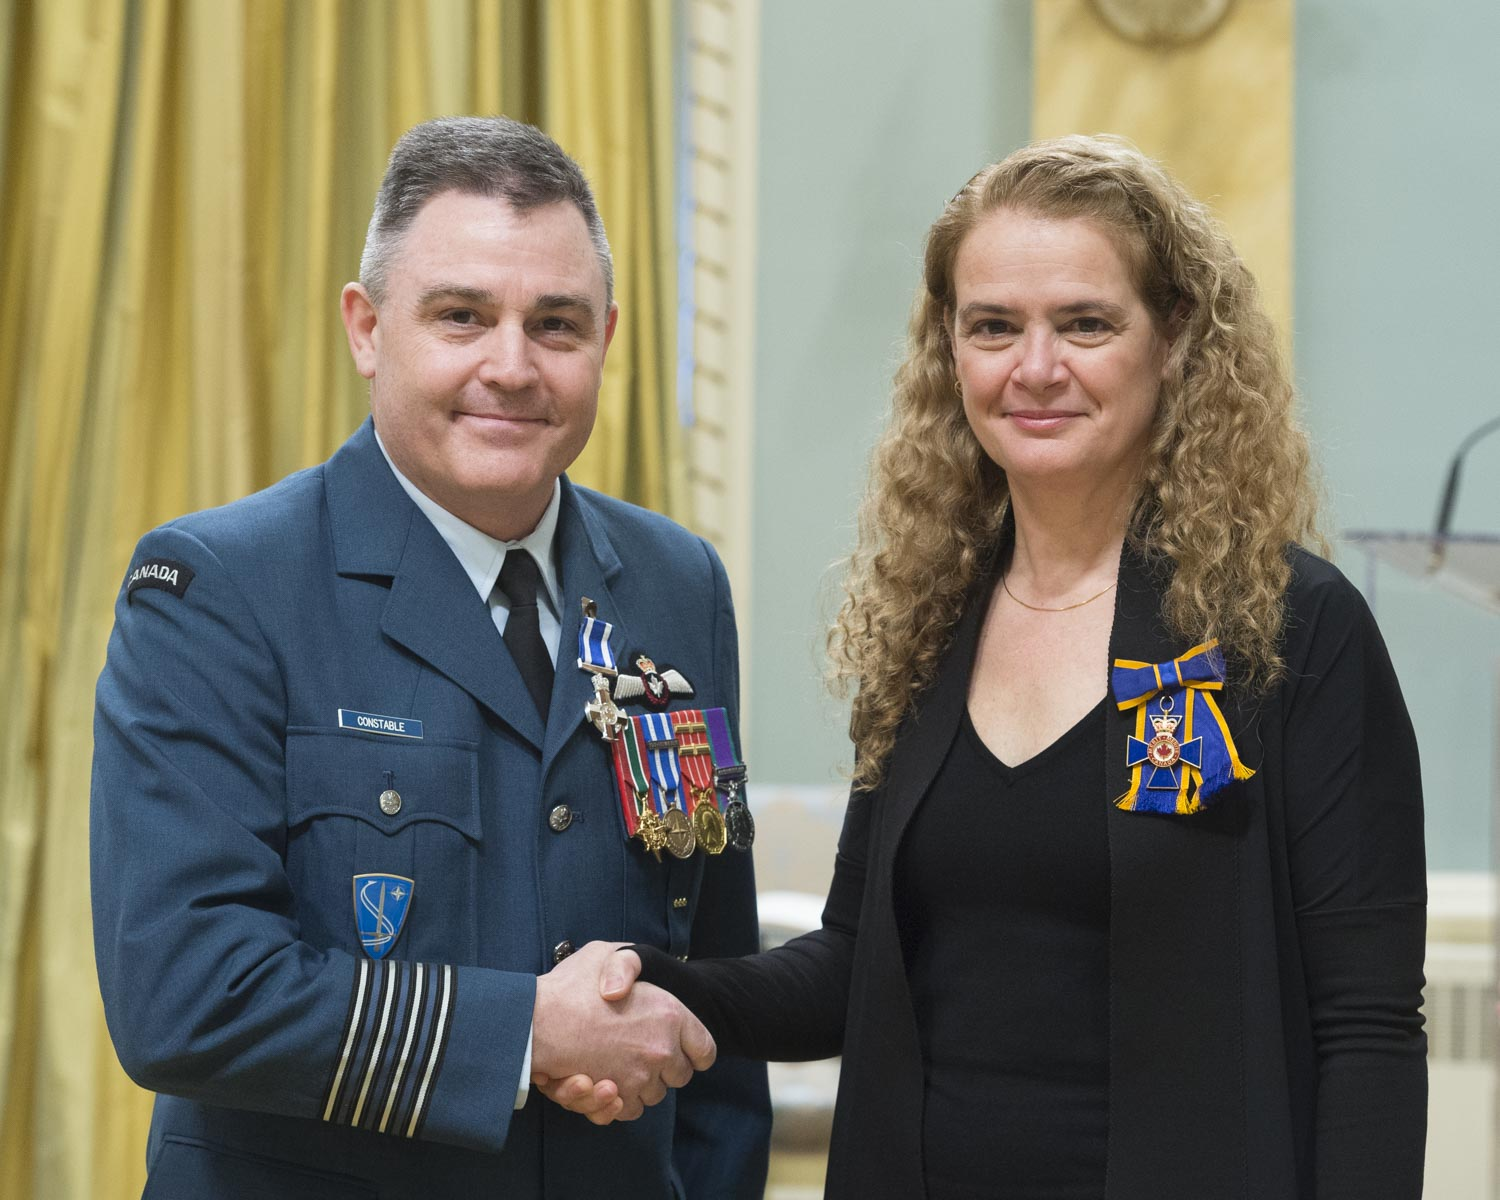 The Governor General presented a Meritorious Service Cross (Military Division) to Colonel Daniel Stewart Constable. From October 2014 to May 2015, Colonel Constable excelled as commander of the inaugural Joint Task Force-Iraq in Kuwait. He skilfully managed a high volume of critical issues while maintaining unwavering personal dedication to the mission. His exceptional leadership and professionalism, while overseeing the strategic integration of Canada into the United States-led coalition, enabled the task force to commence direct combat air operations in record time. Colonel Constable's distinctive accomplishments have brought great honour to the Canadian Armed Forces and to Canada.